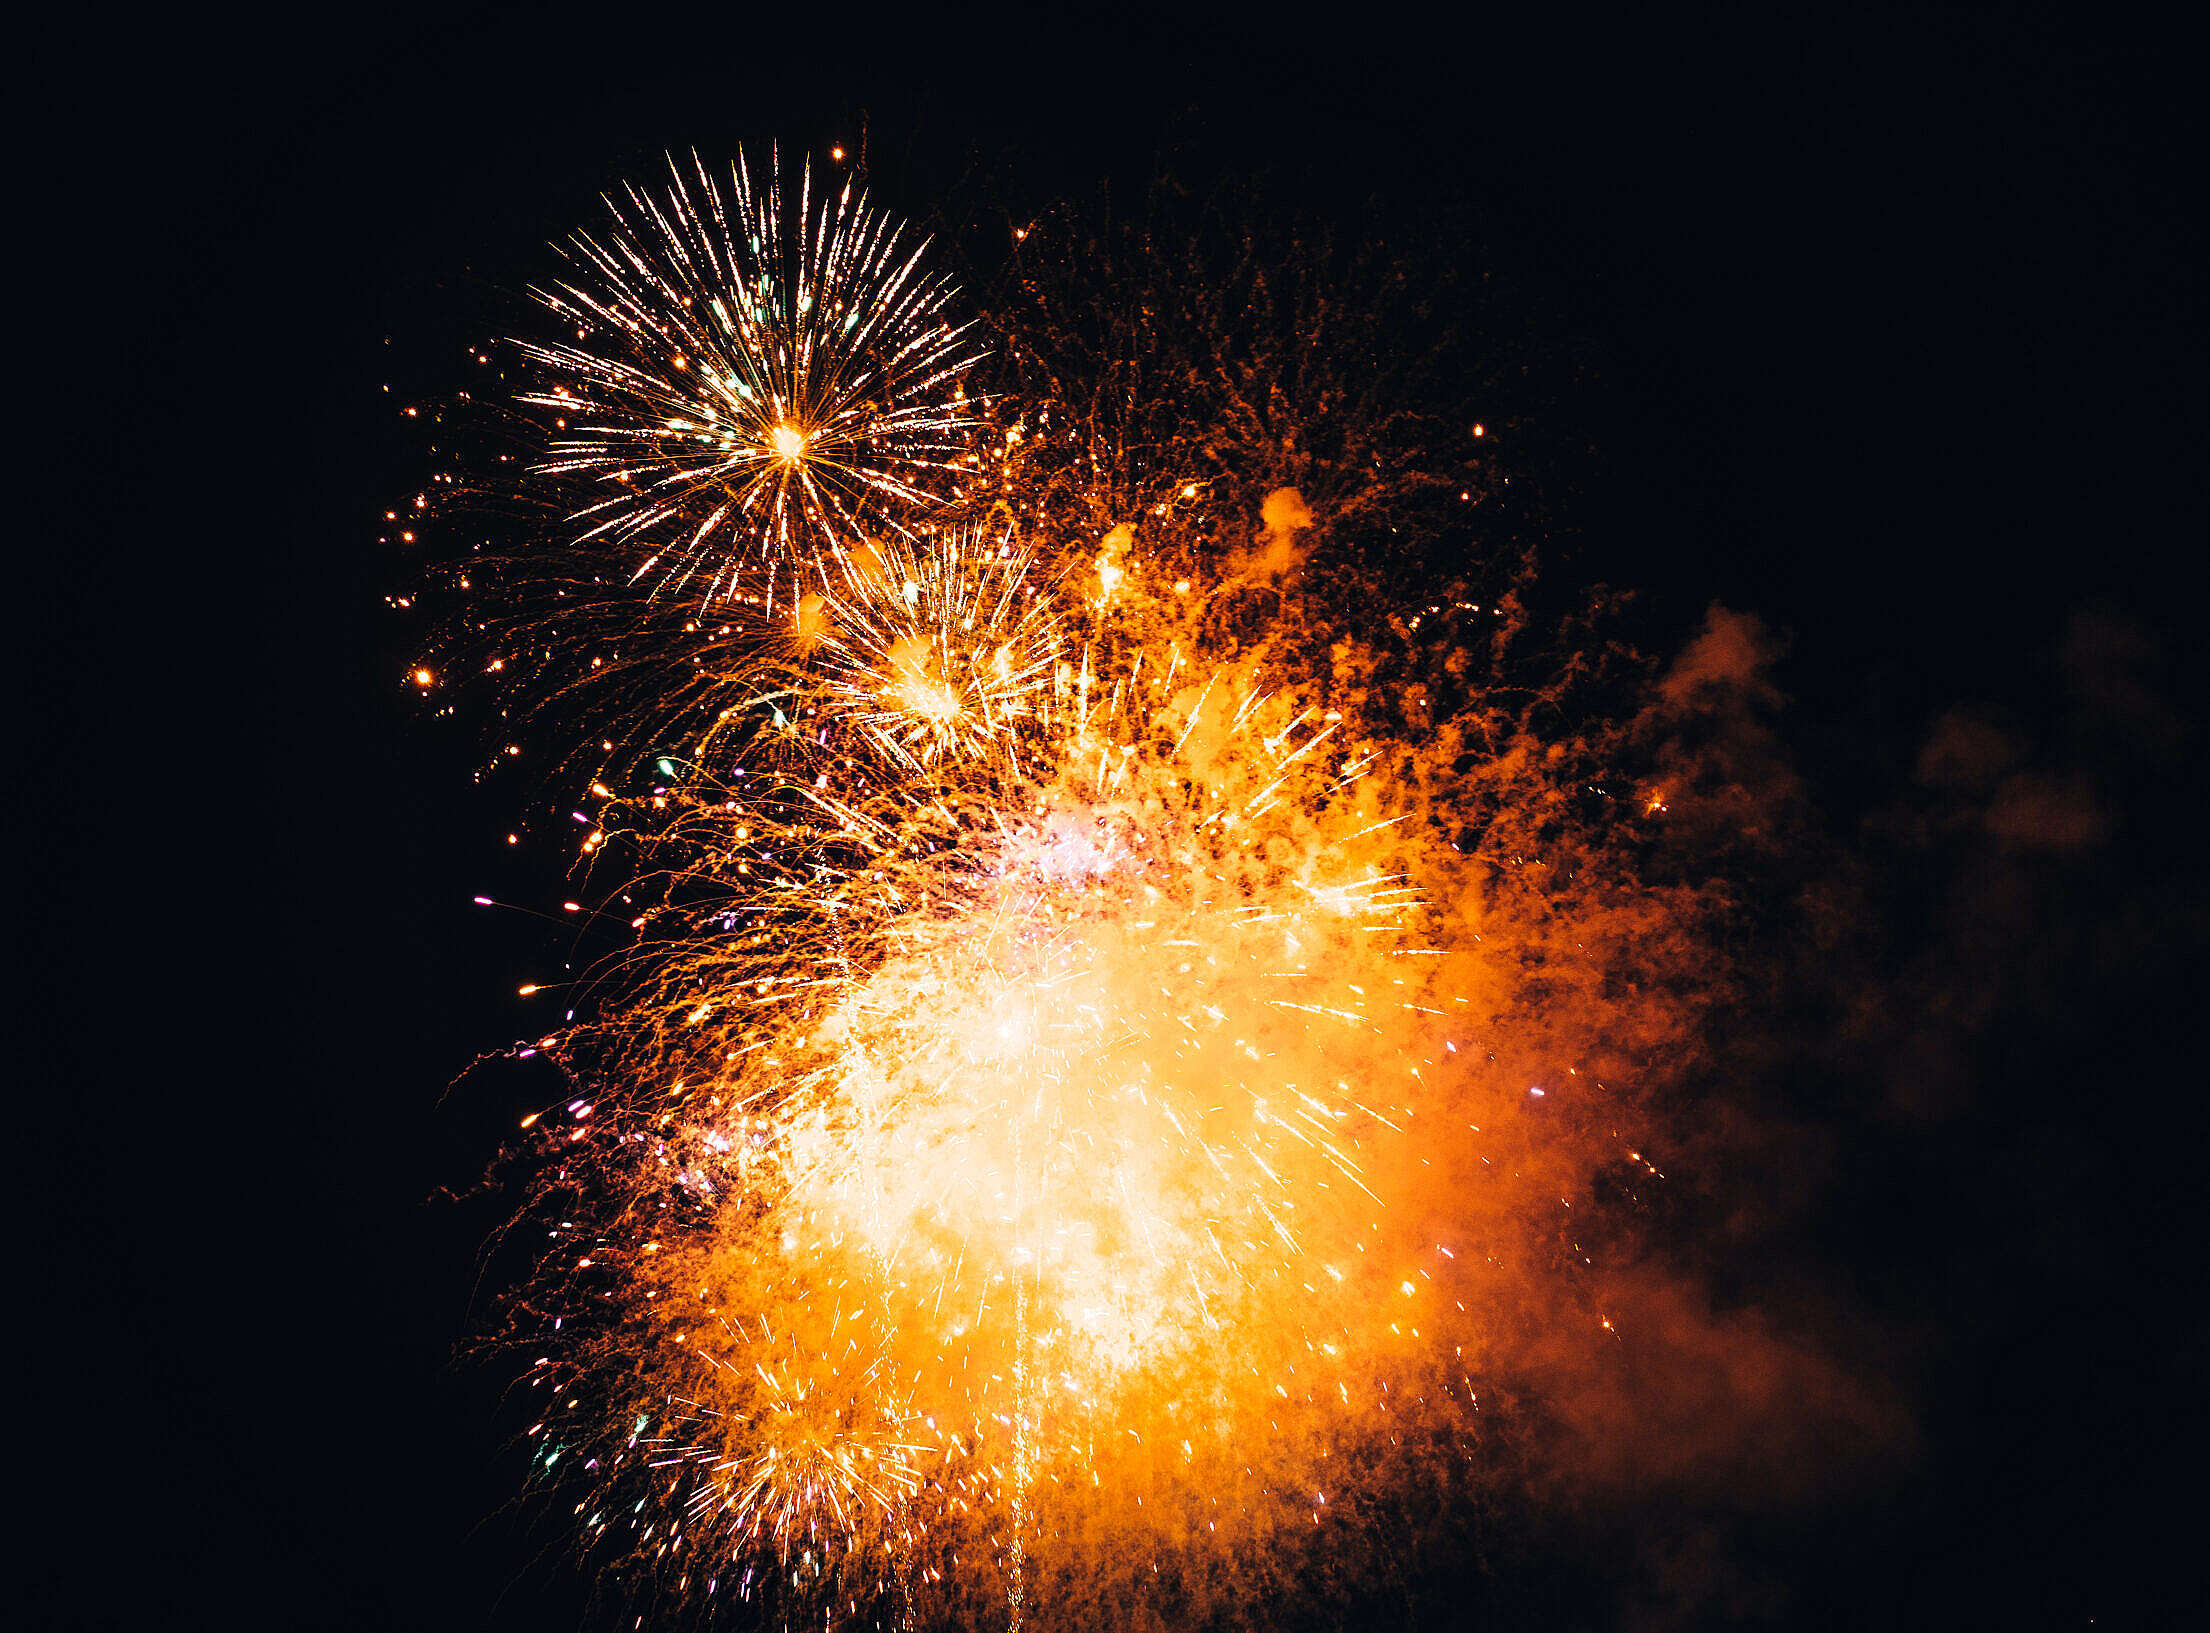 Independence Day Celebration 4th of July Free Stock Photo